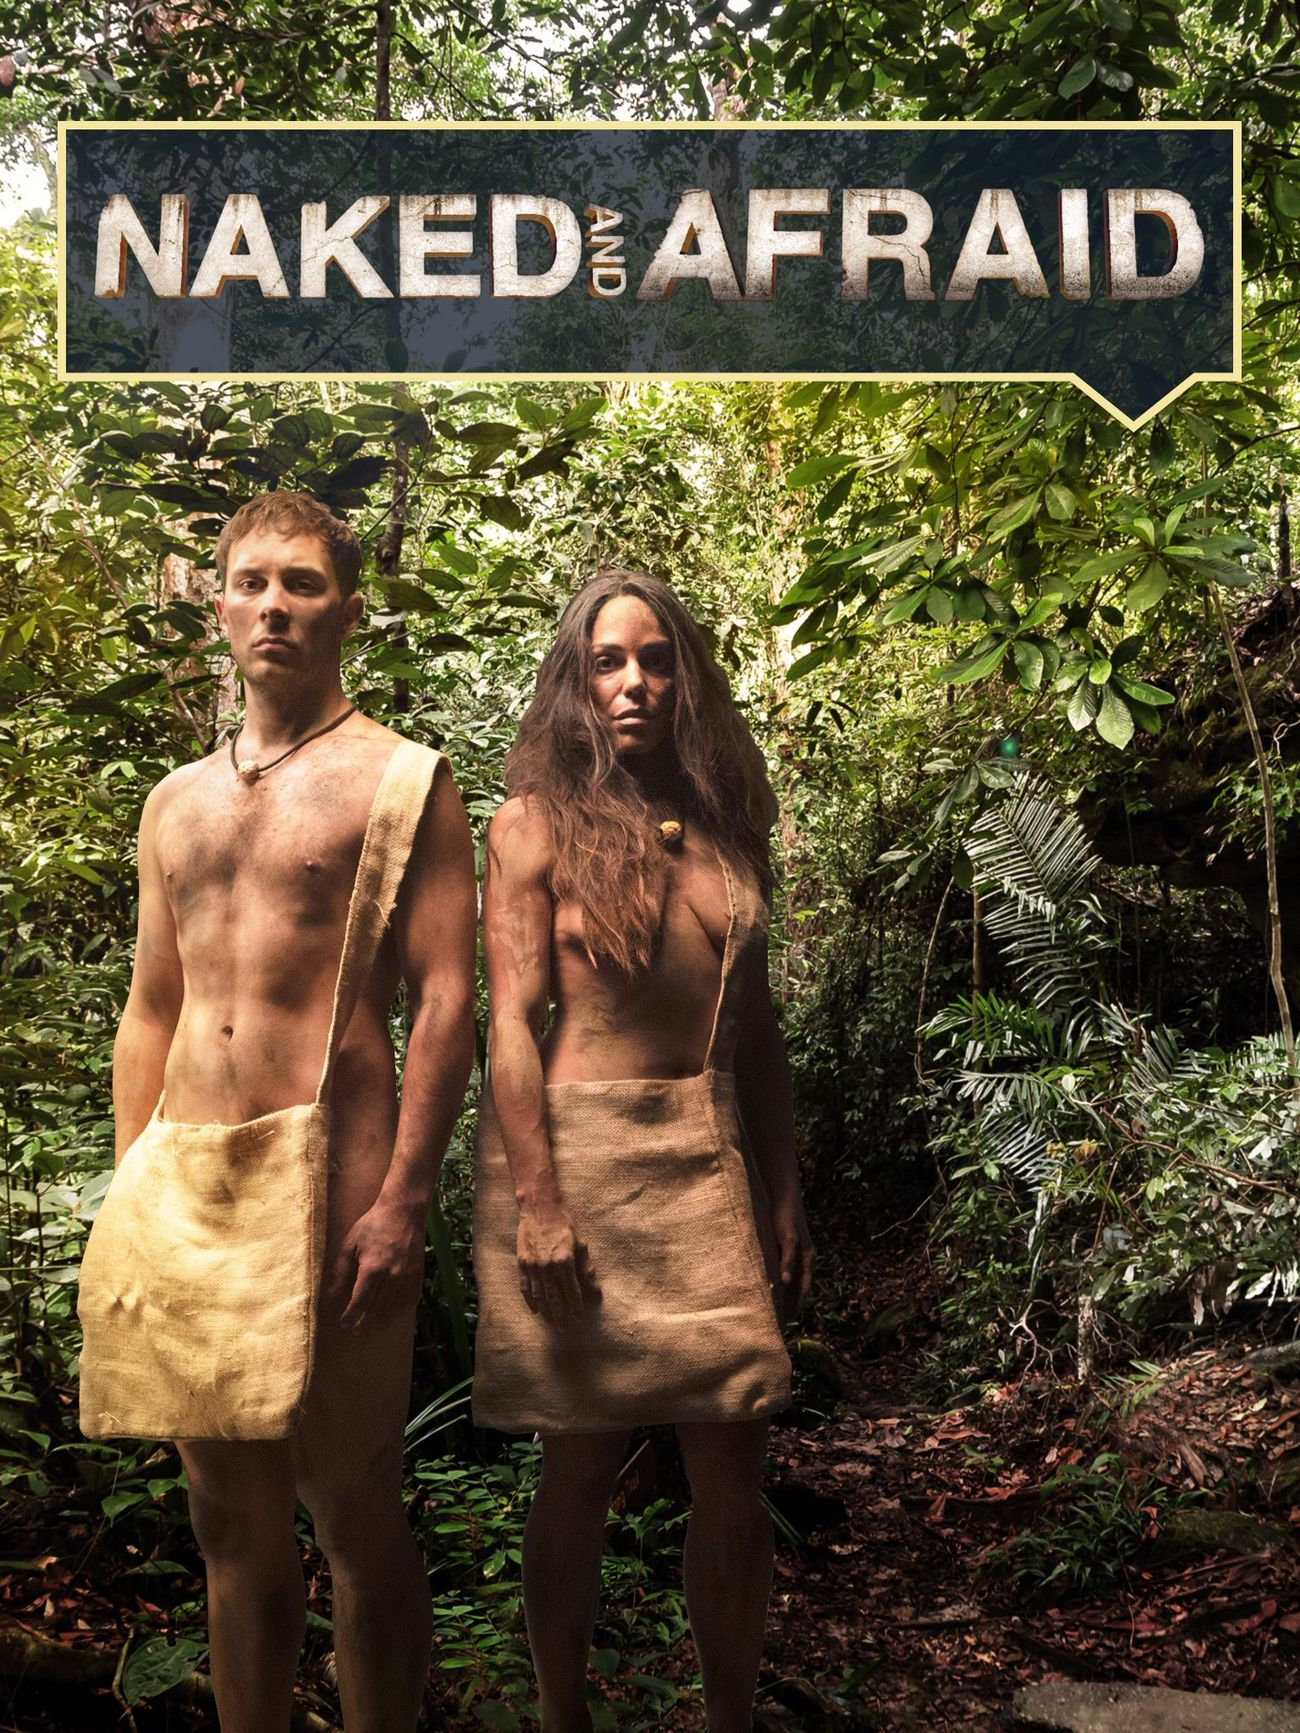 What is naked and afraid uncensored